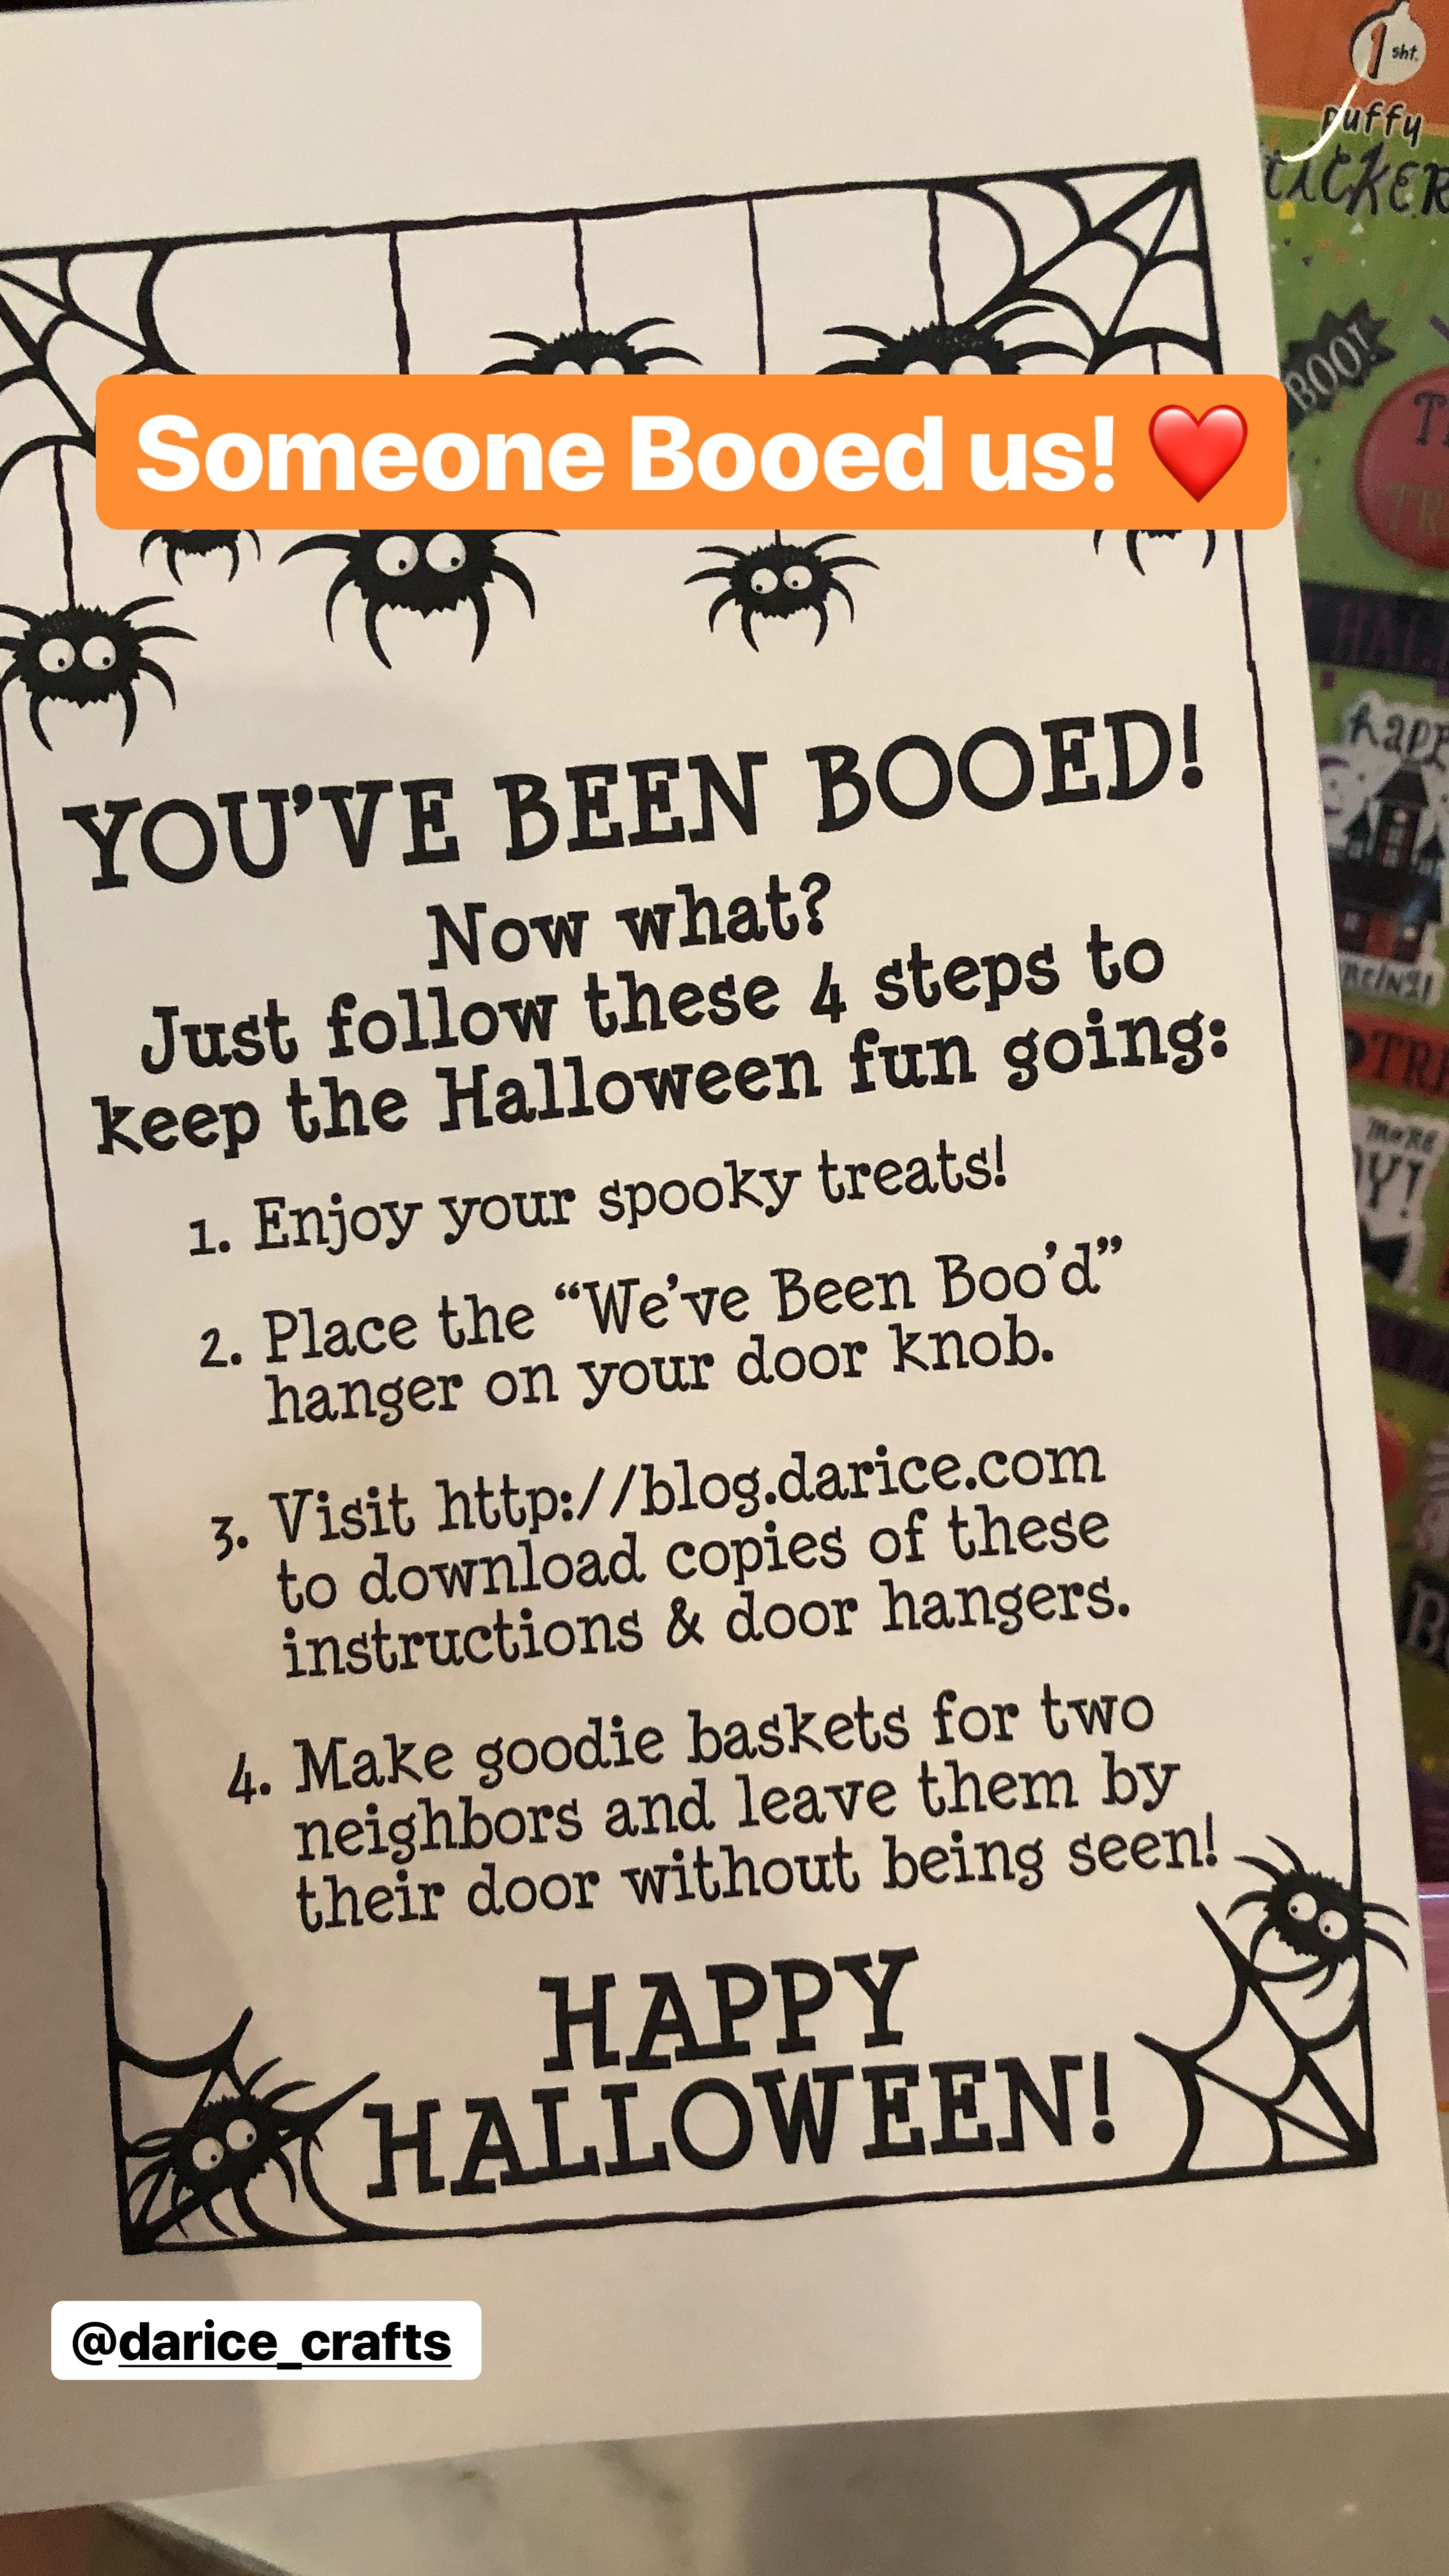 Find your printable  http://blog.darice.com/holiday/fall/bood-halloween-printables/